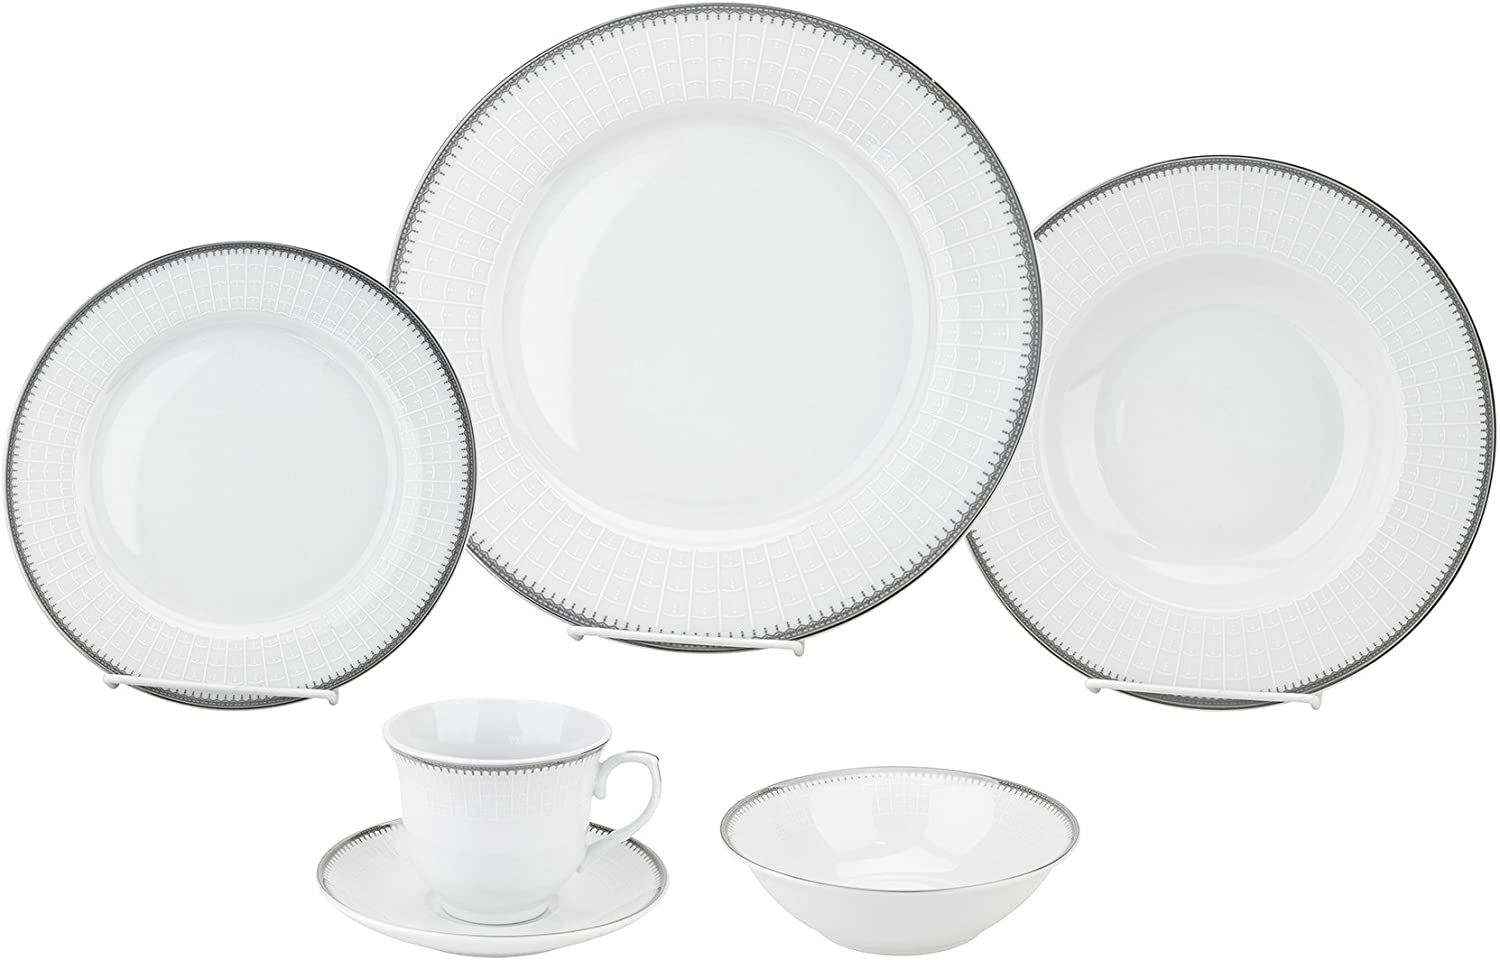 Porcelain Dinnerware Set, 24-Piece Service For 4 by Lorren Home Trends/Alyssa Design: Dinner Plates, Soup Bowls, Salad Plates, Coffee Cups with Saucers, Fruit Bowls